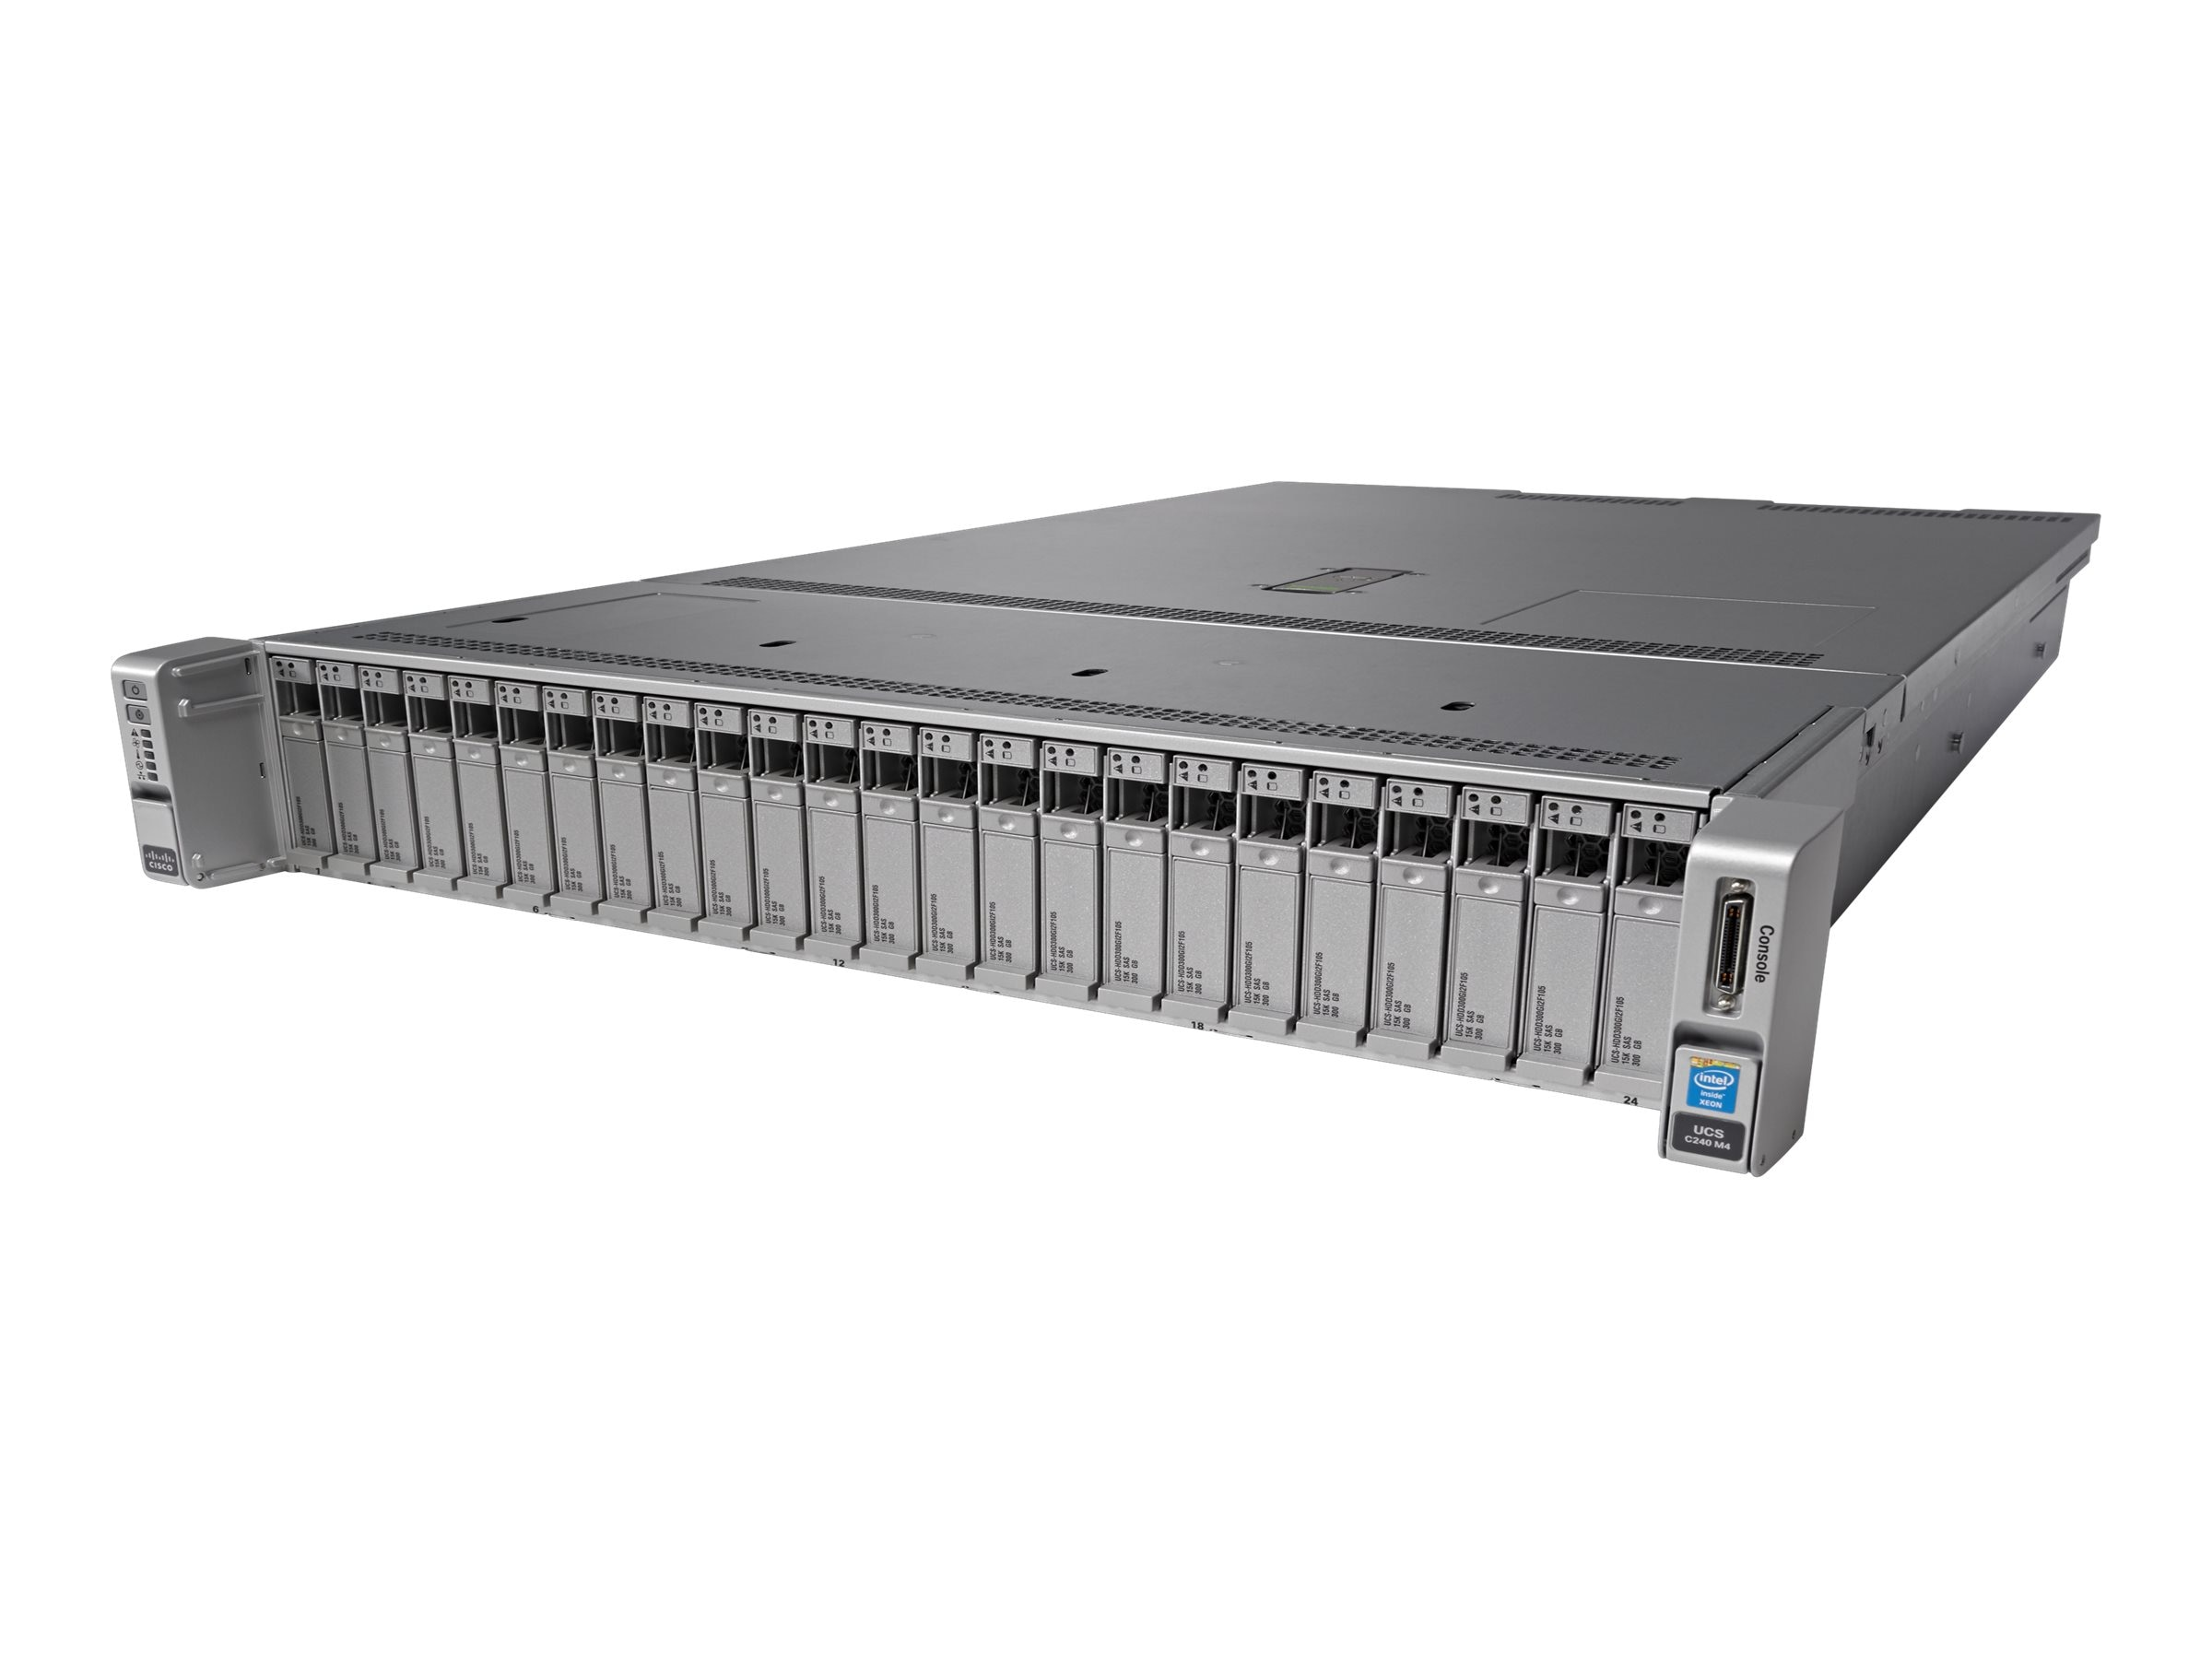 Cisco UCS-SPR-C240M4-BB1 Image 2